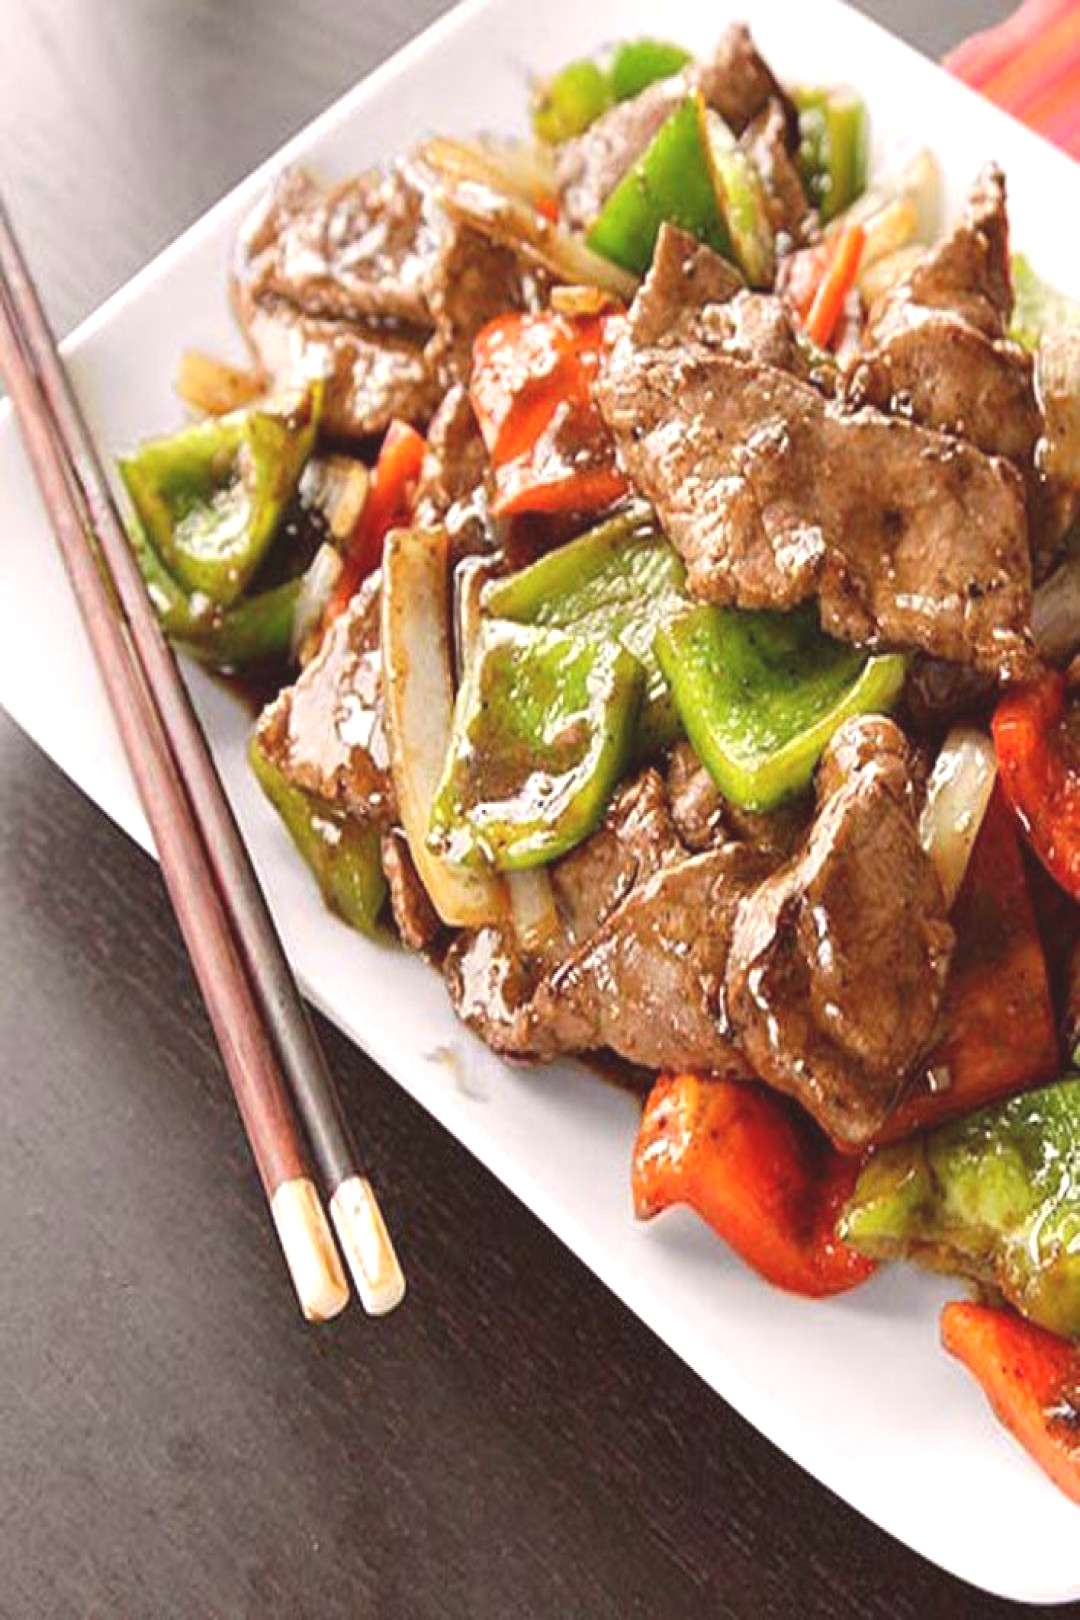 Chinese Pepper Steak (Stir-Fried Beef with Onions, Peppers, and Black Pepper Sauce) Recipe -  -